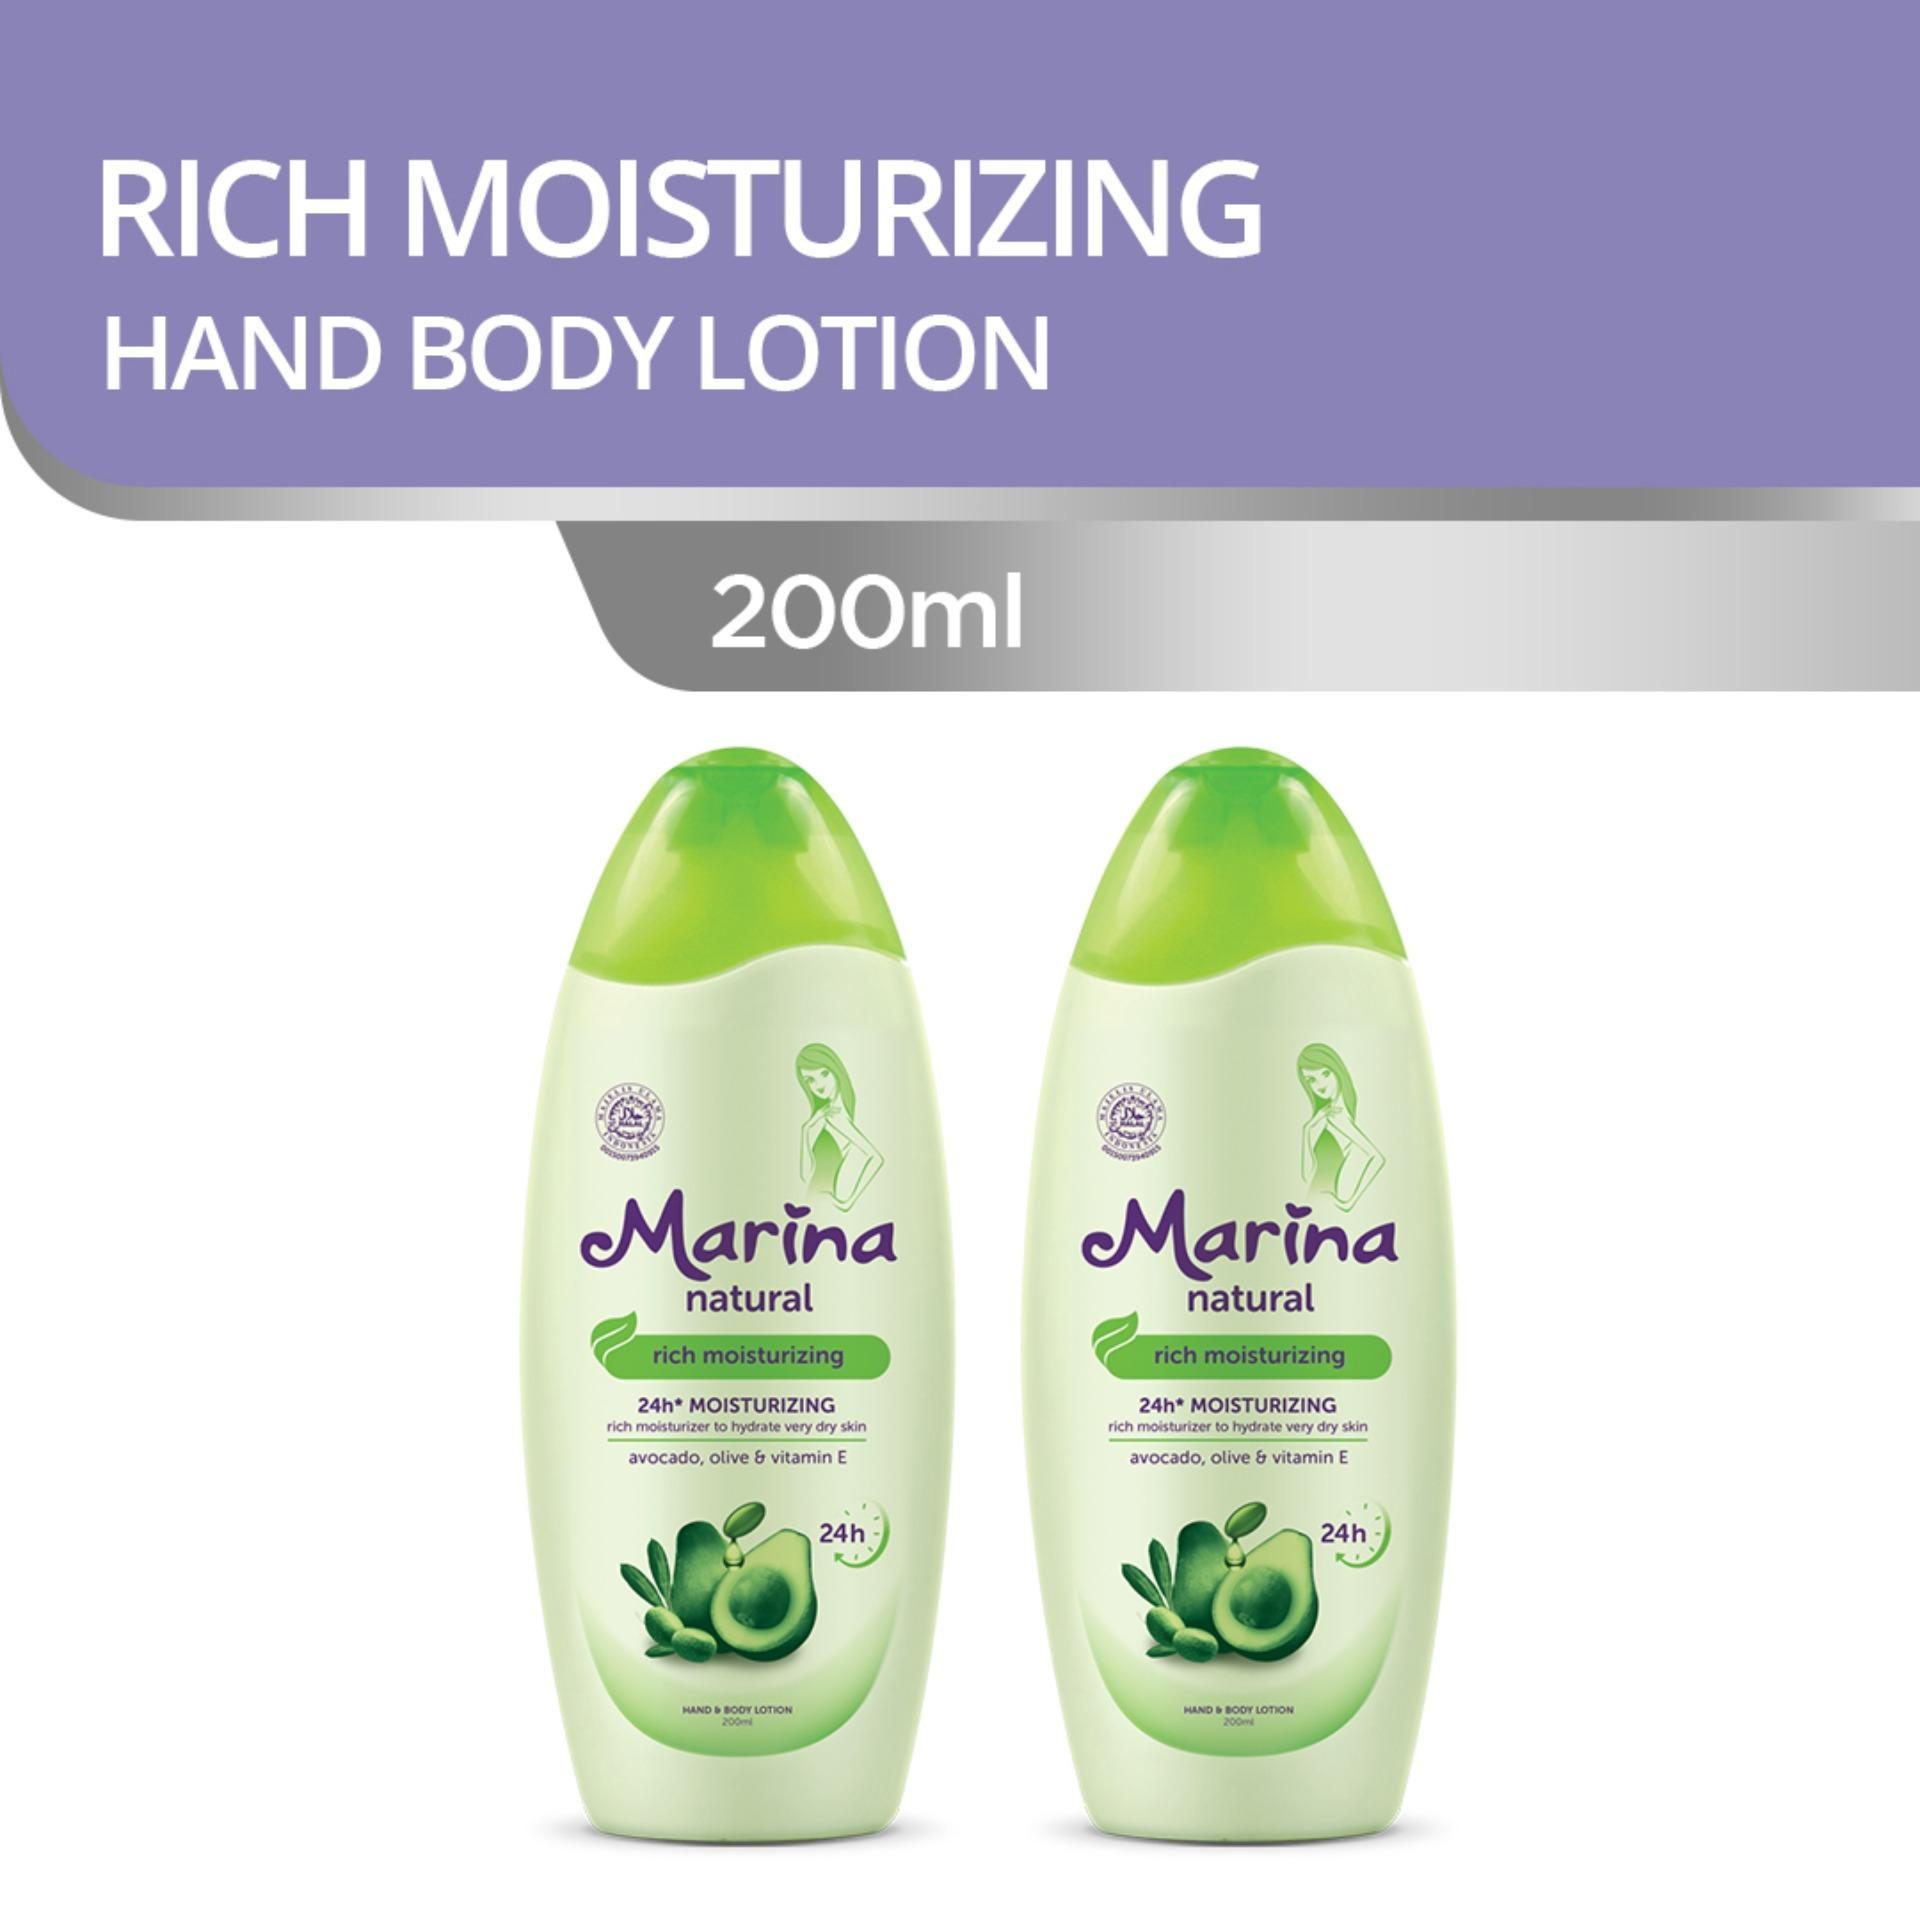 Kelebihan Marina Hand Body Lotion Natural Nutri Fresh 350 Ml 100 Rich Moisturizing 200 2pcs